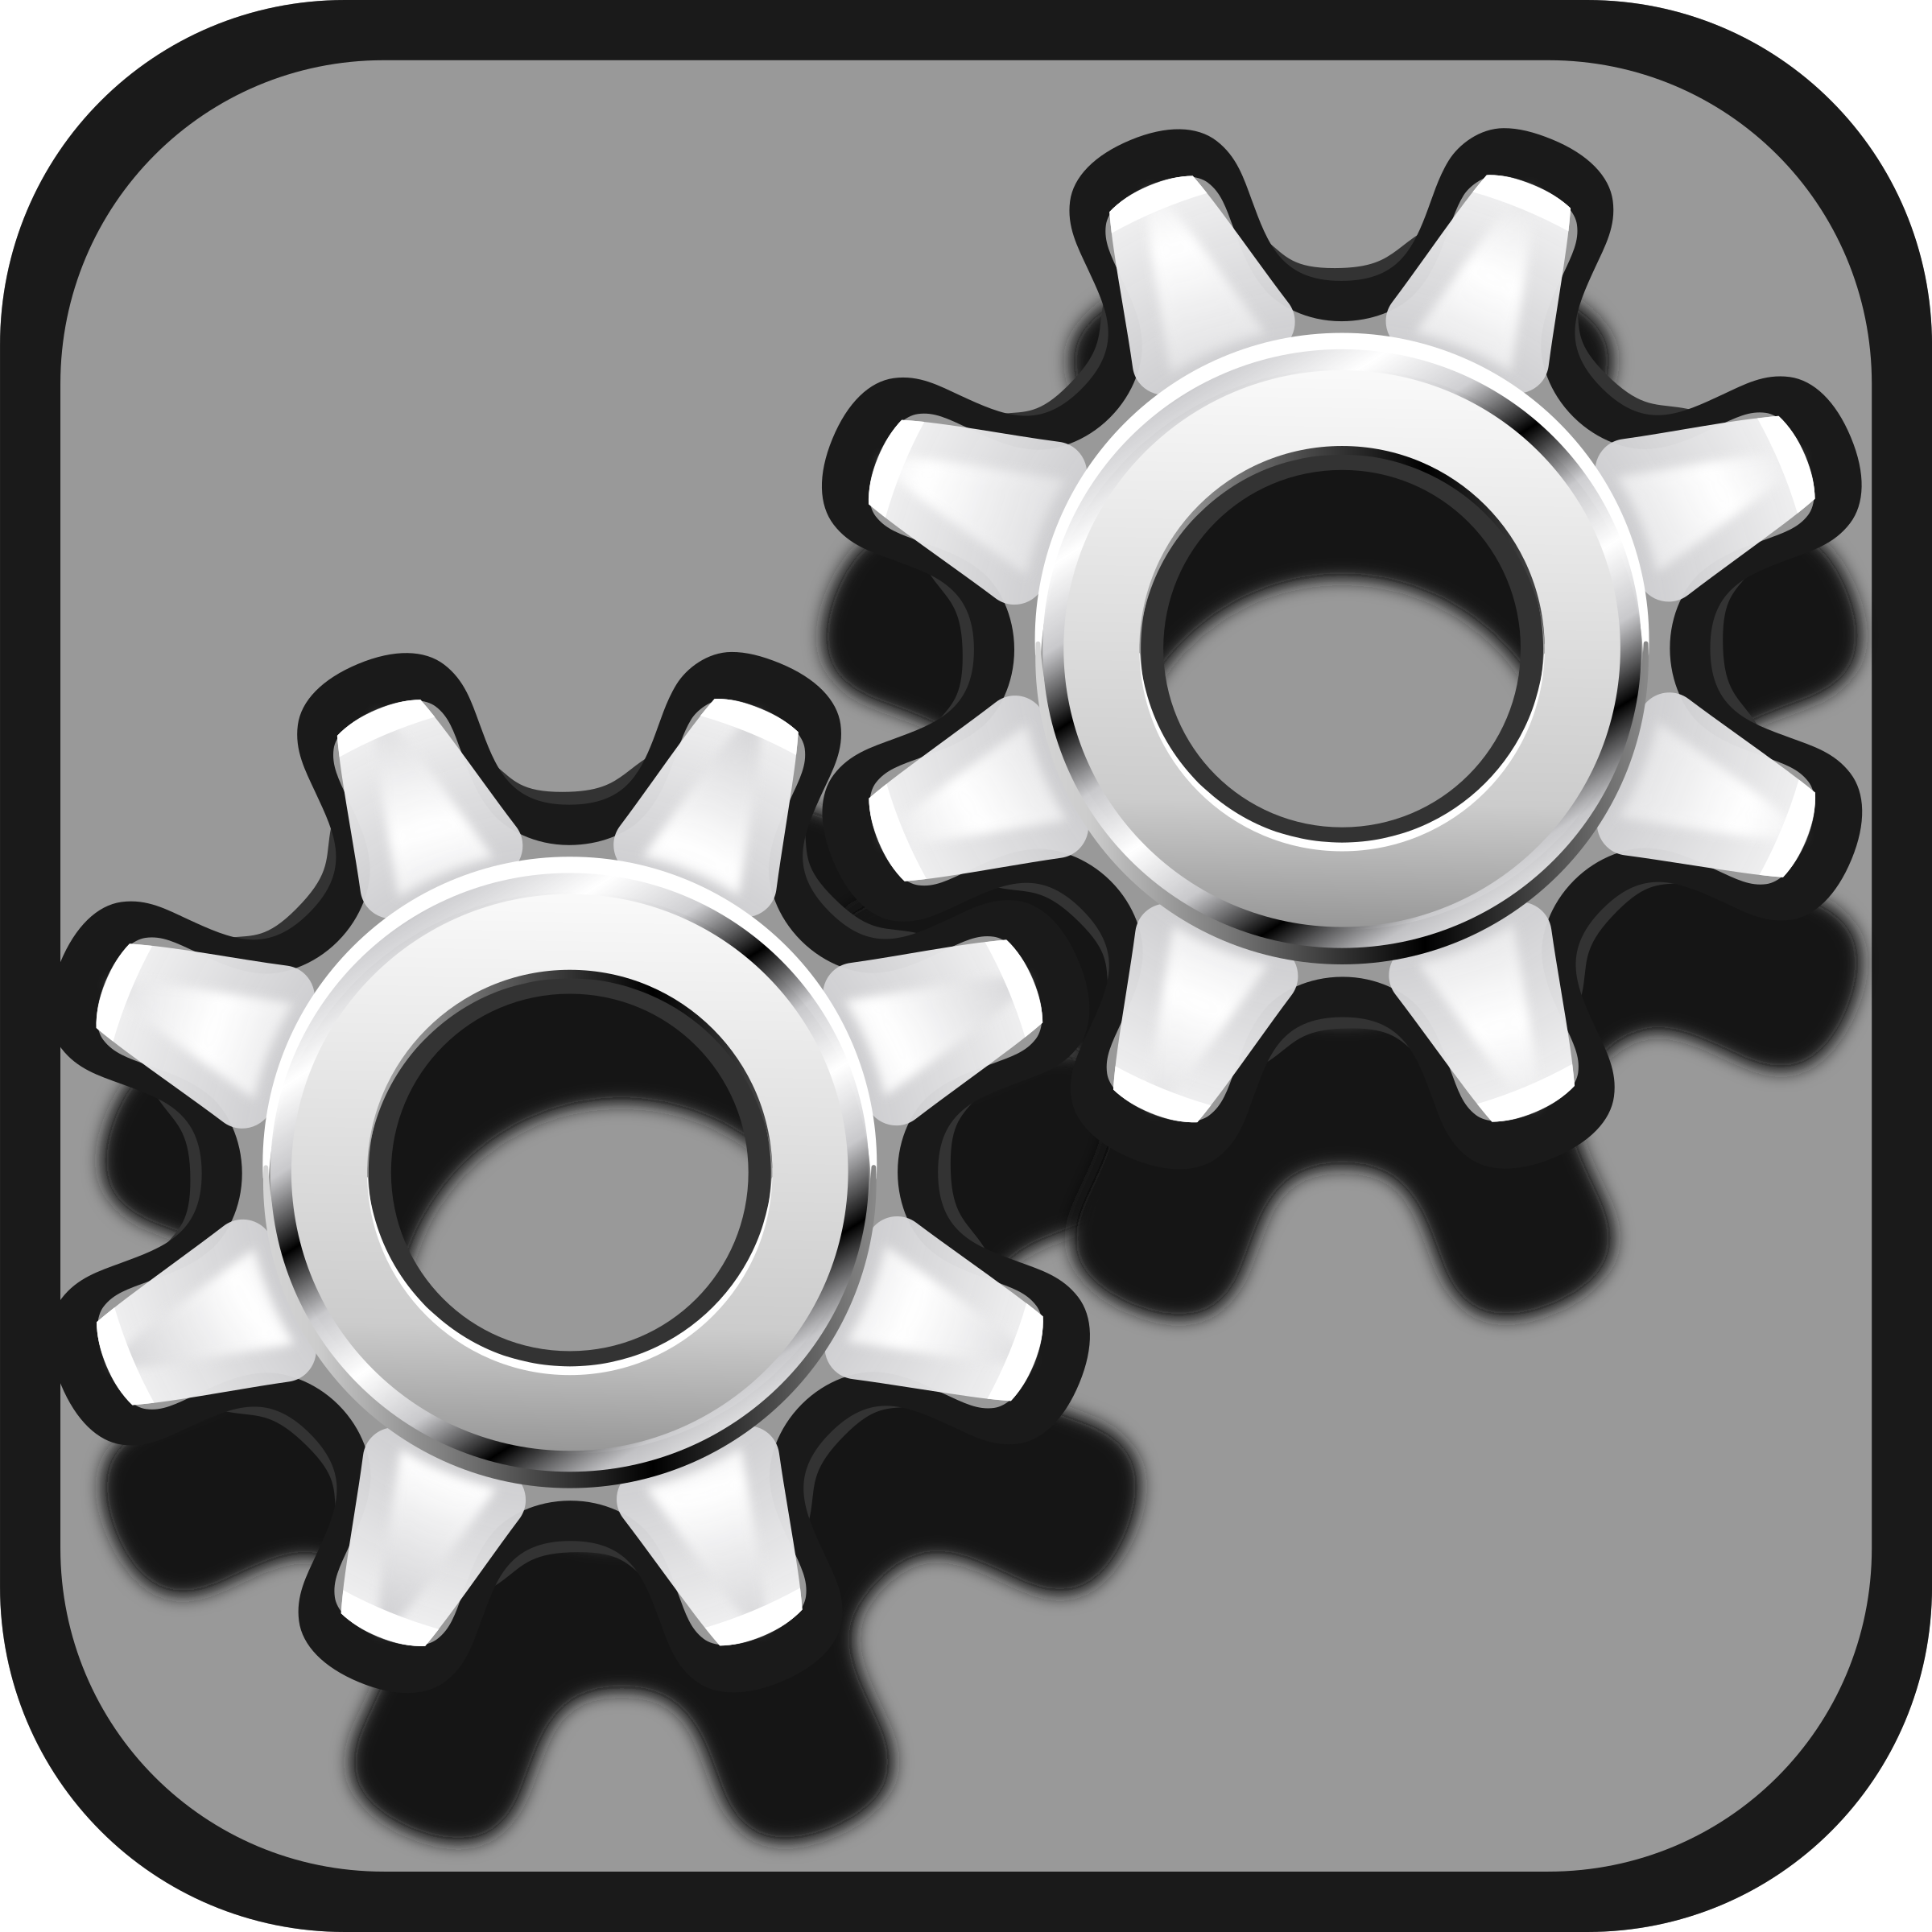 Gear icon by Keistutis